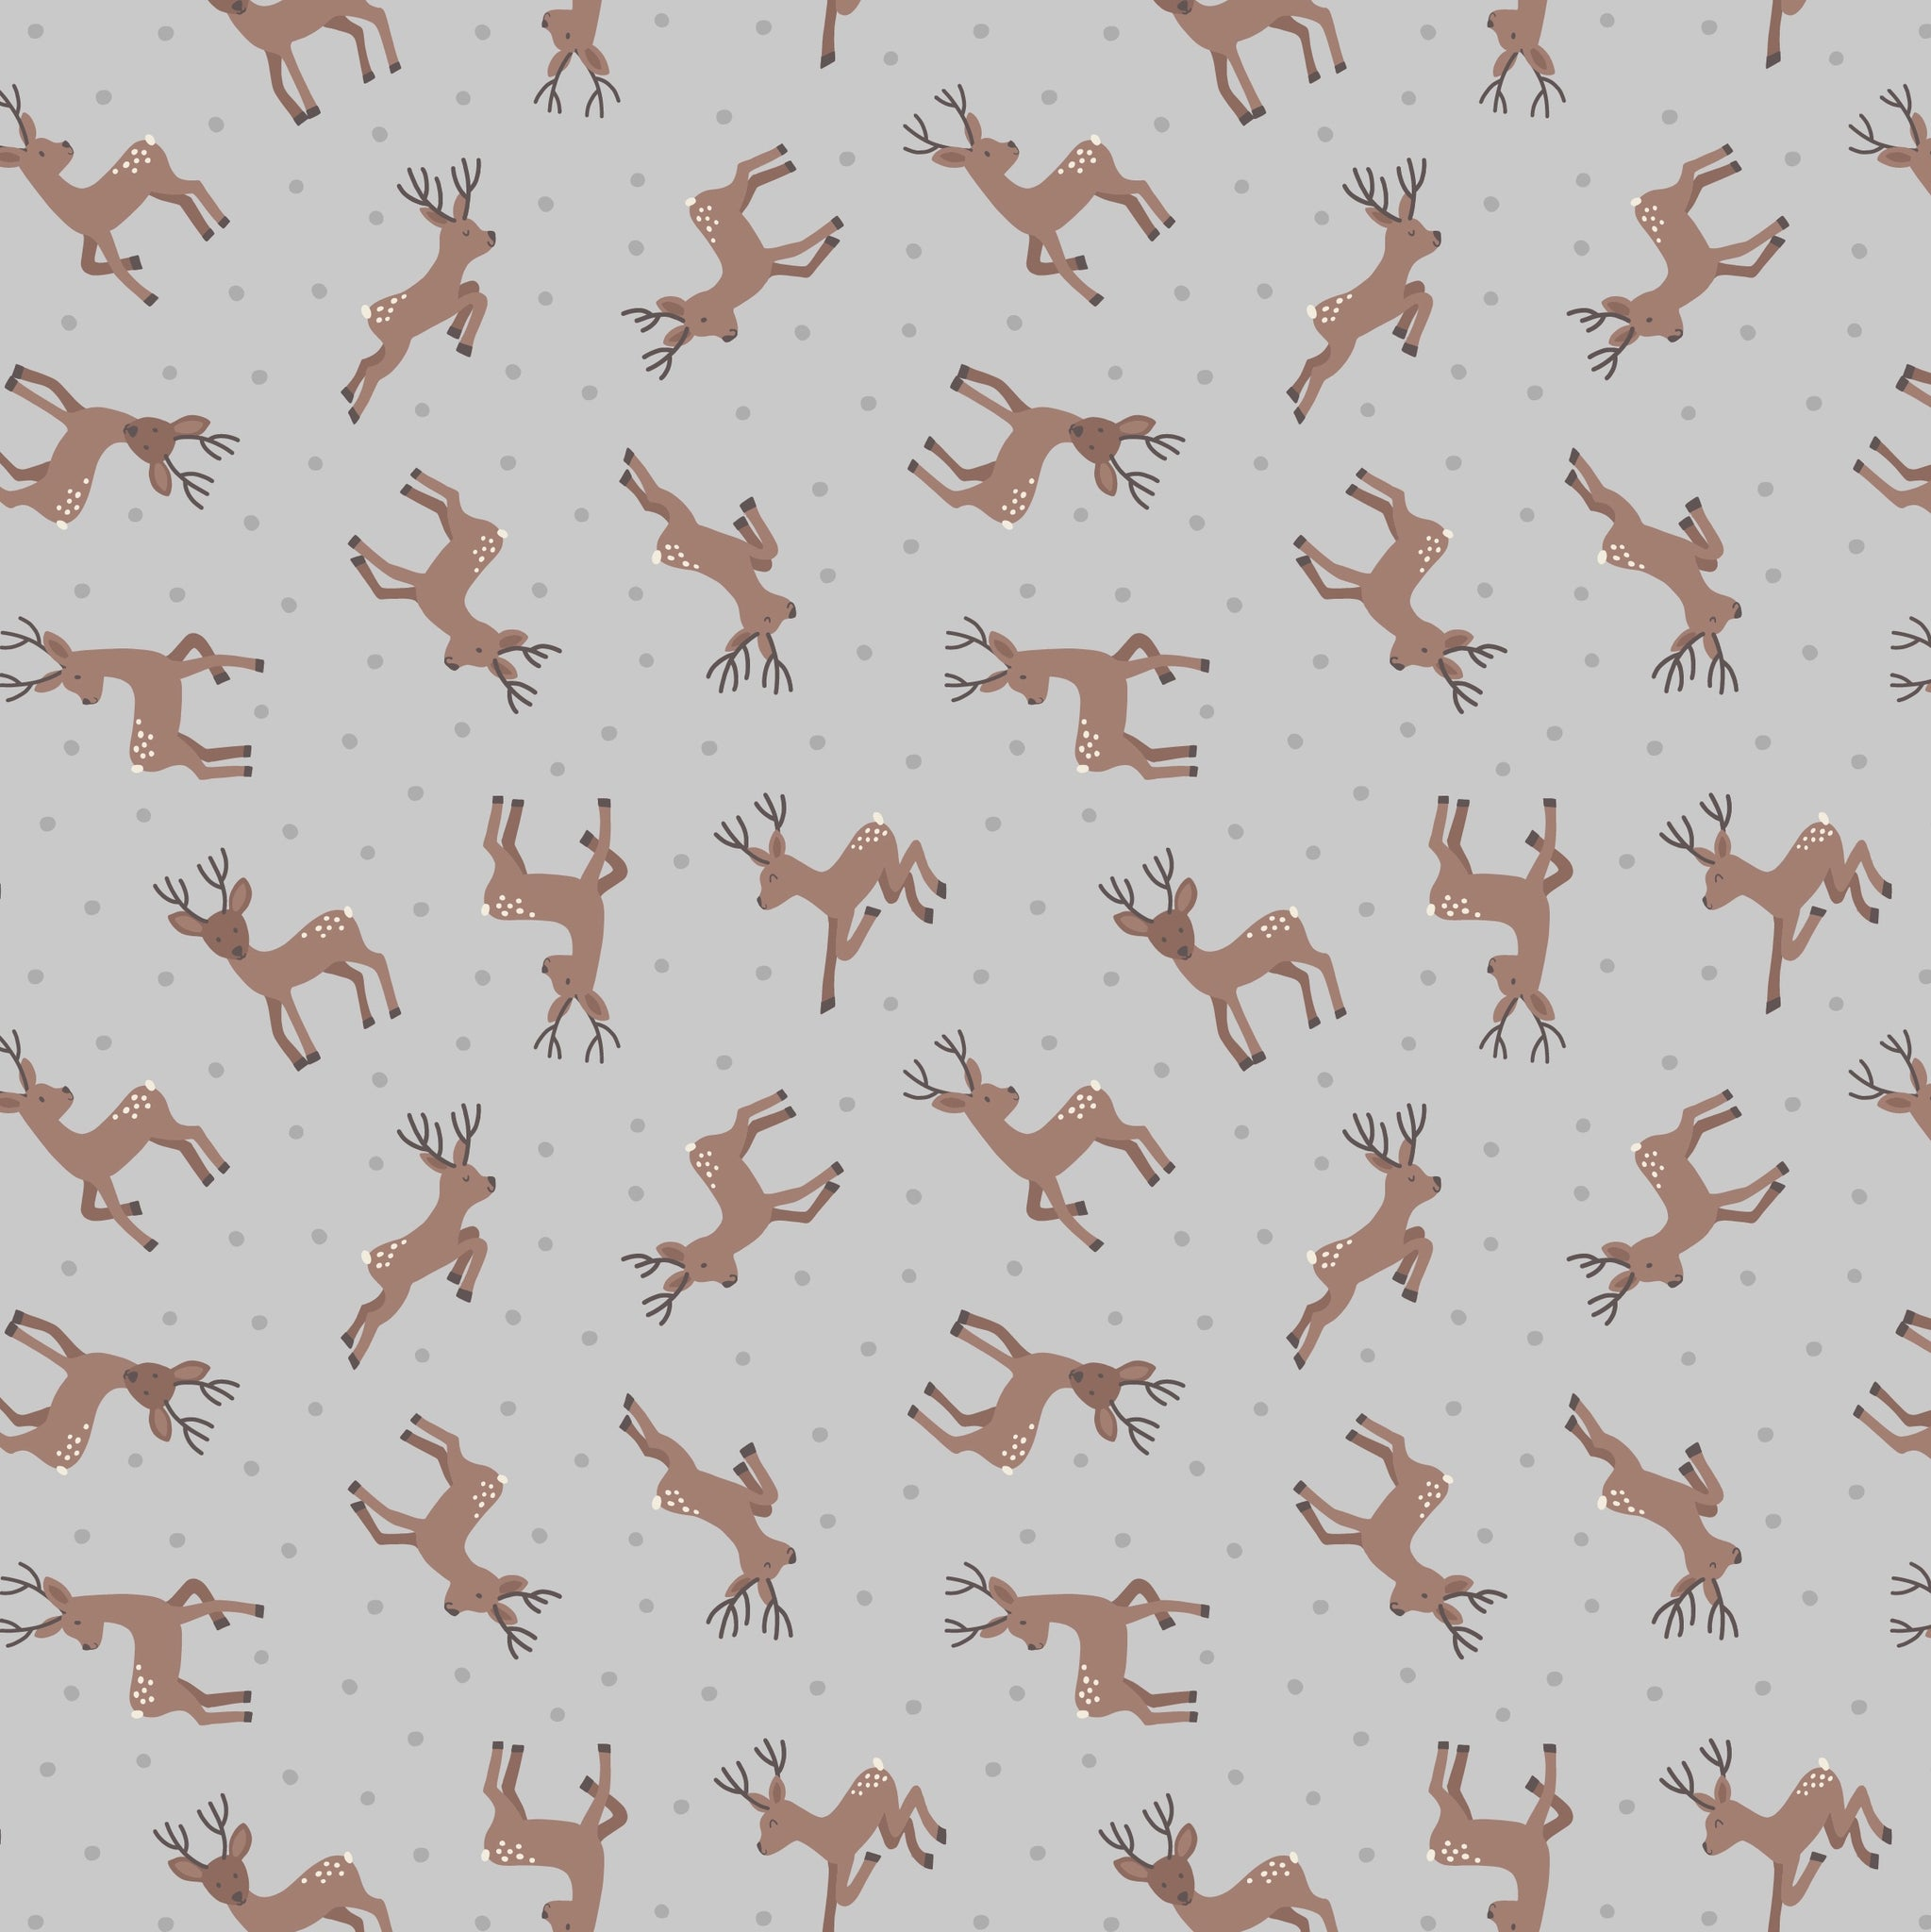 COTTON - Lewis & Irene - Deer on Grey - Small things Country Creatures  (1/2 yard)